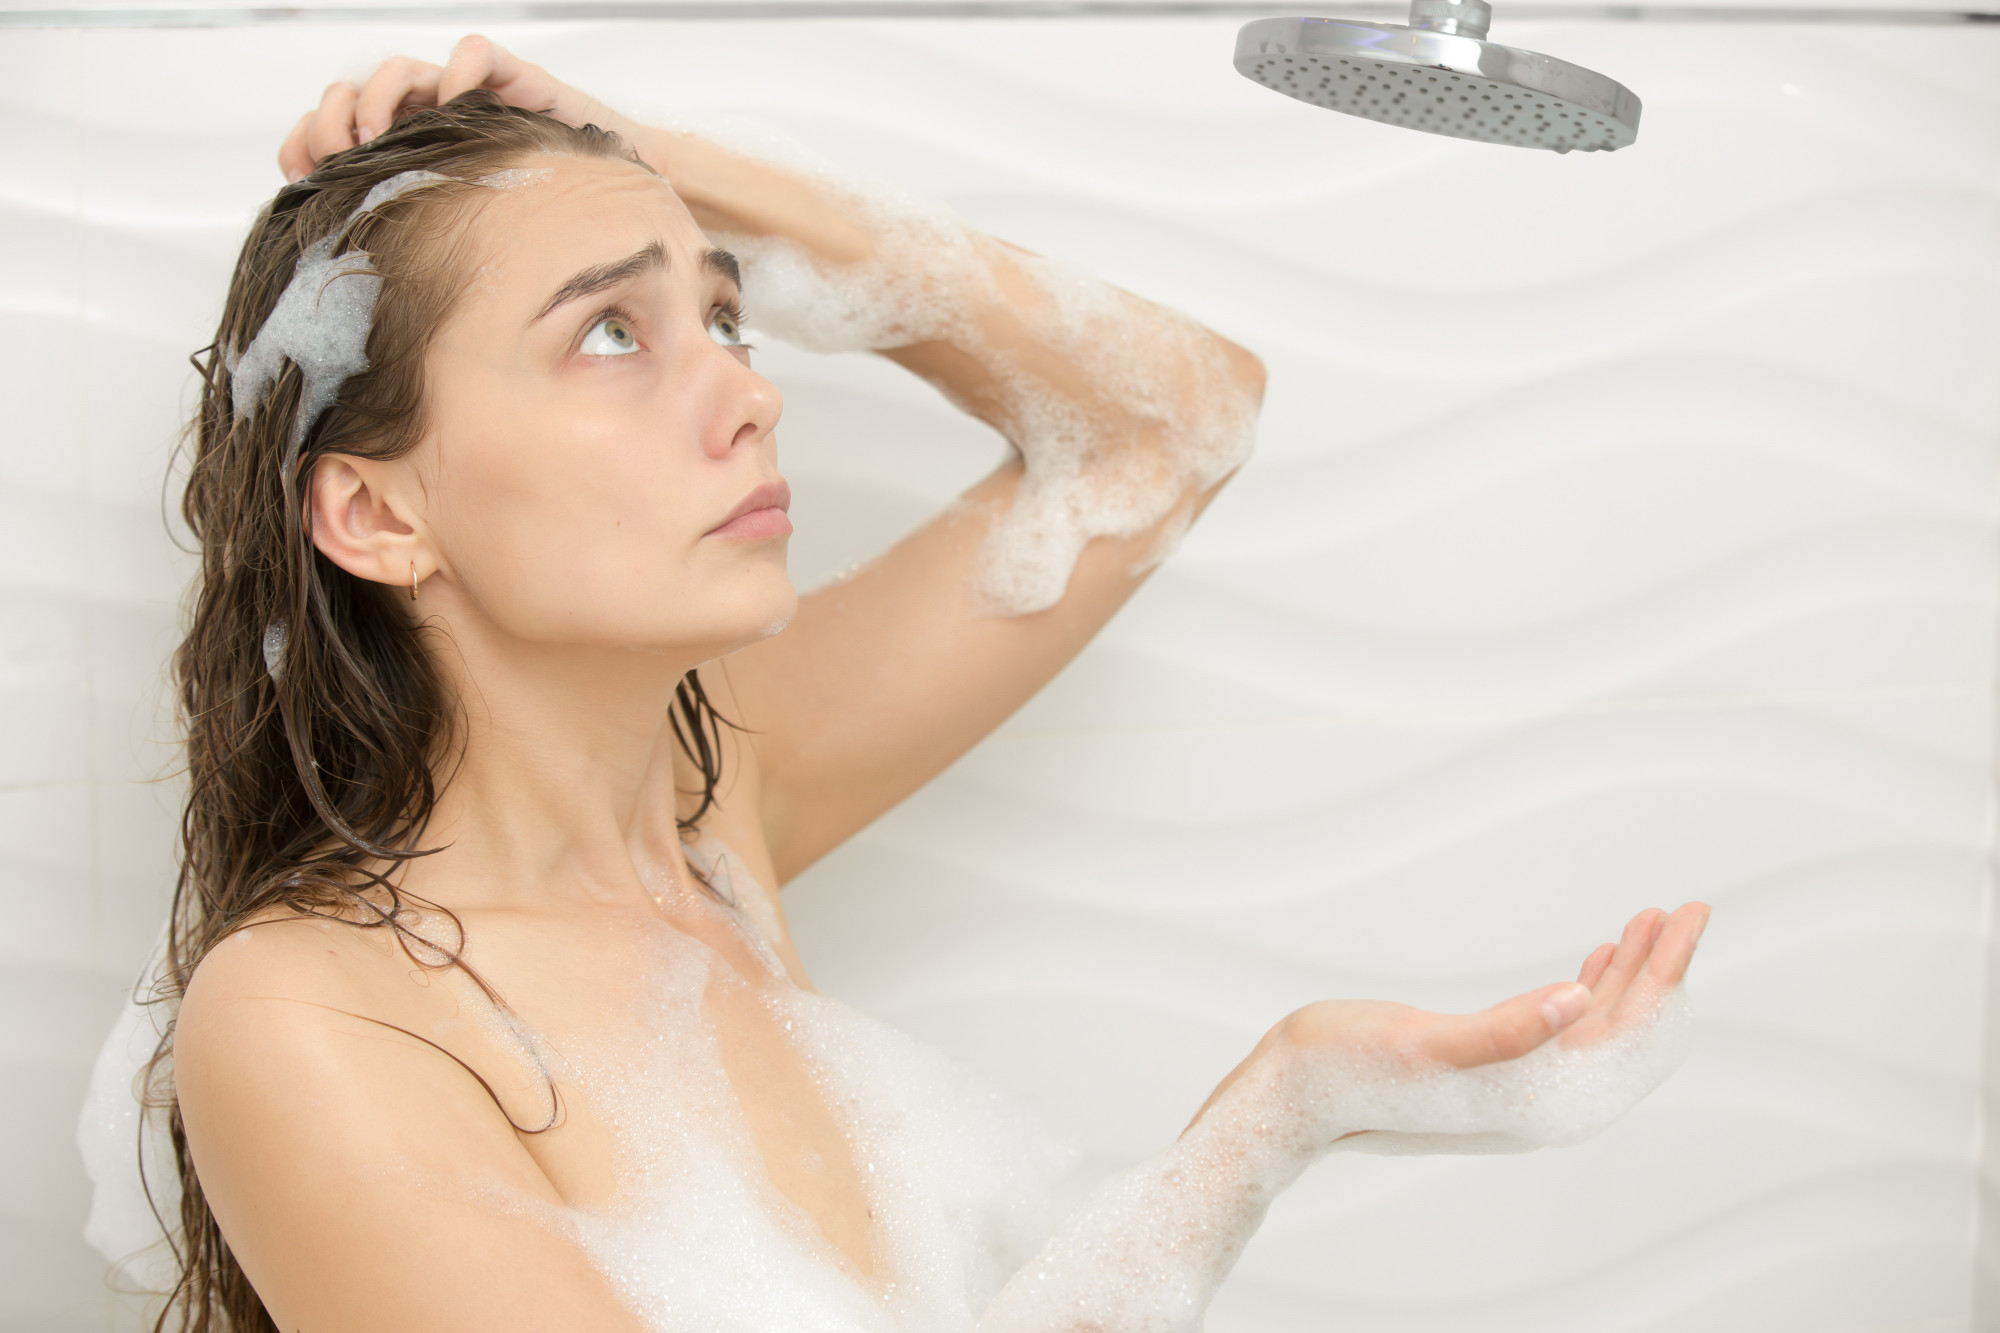 Top 3 Major Signs Your Water Heater Is Going Out